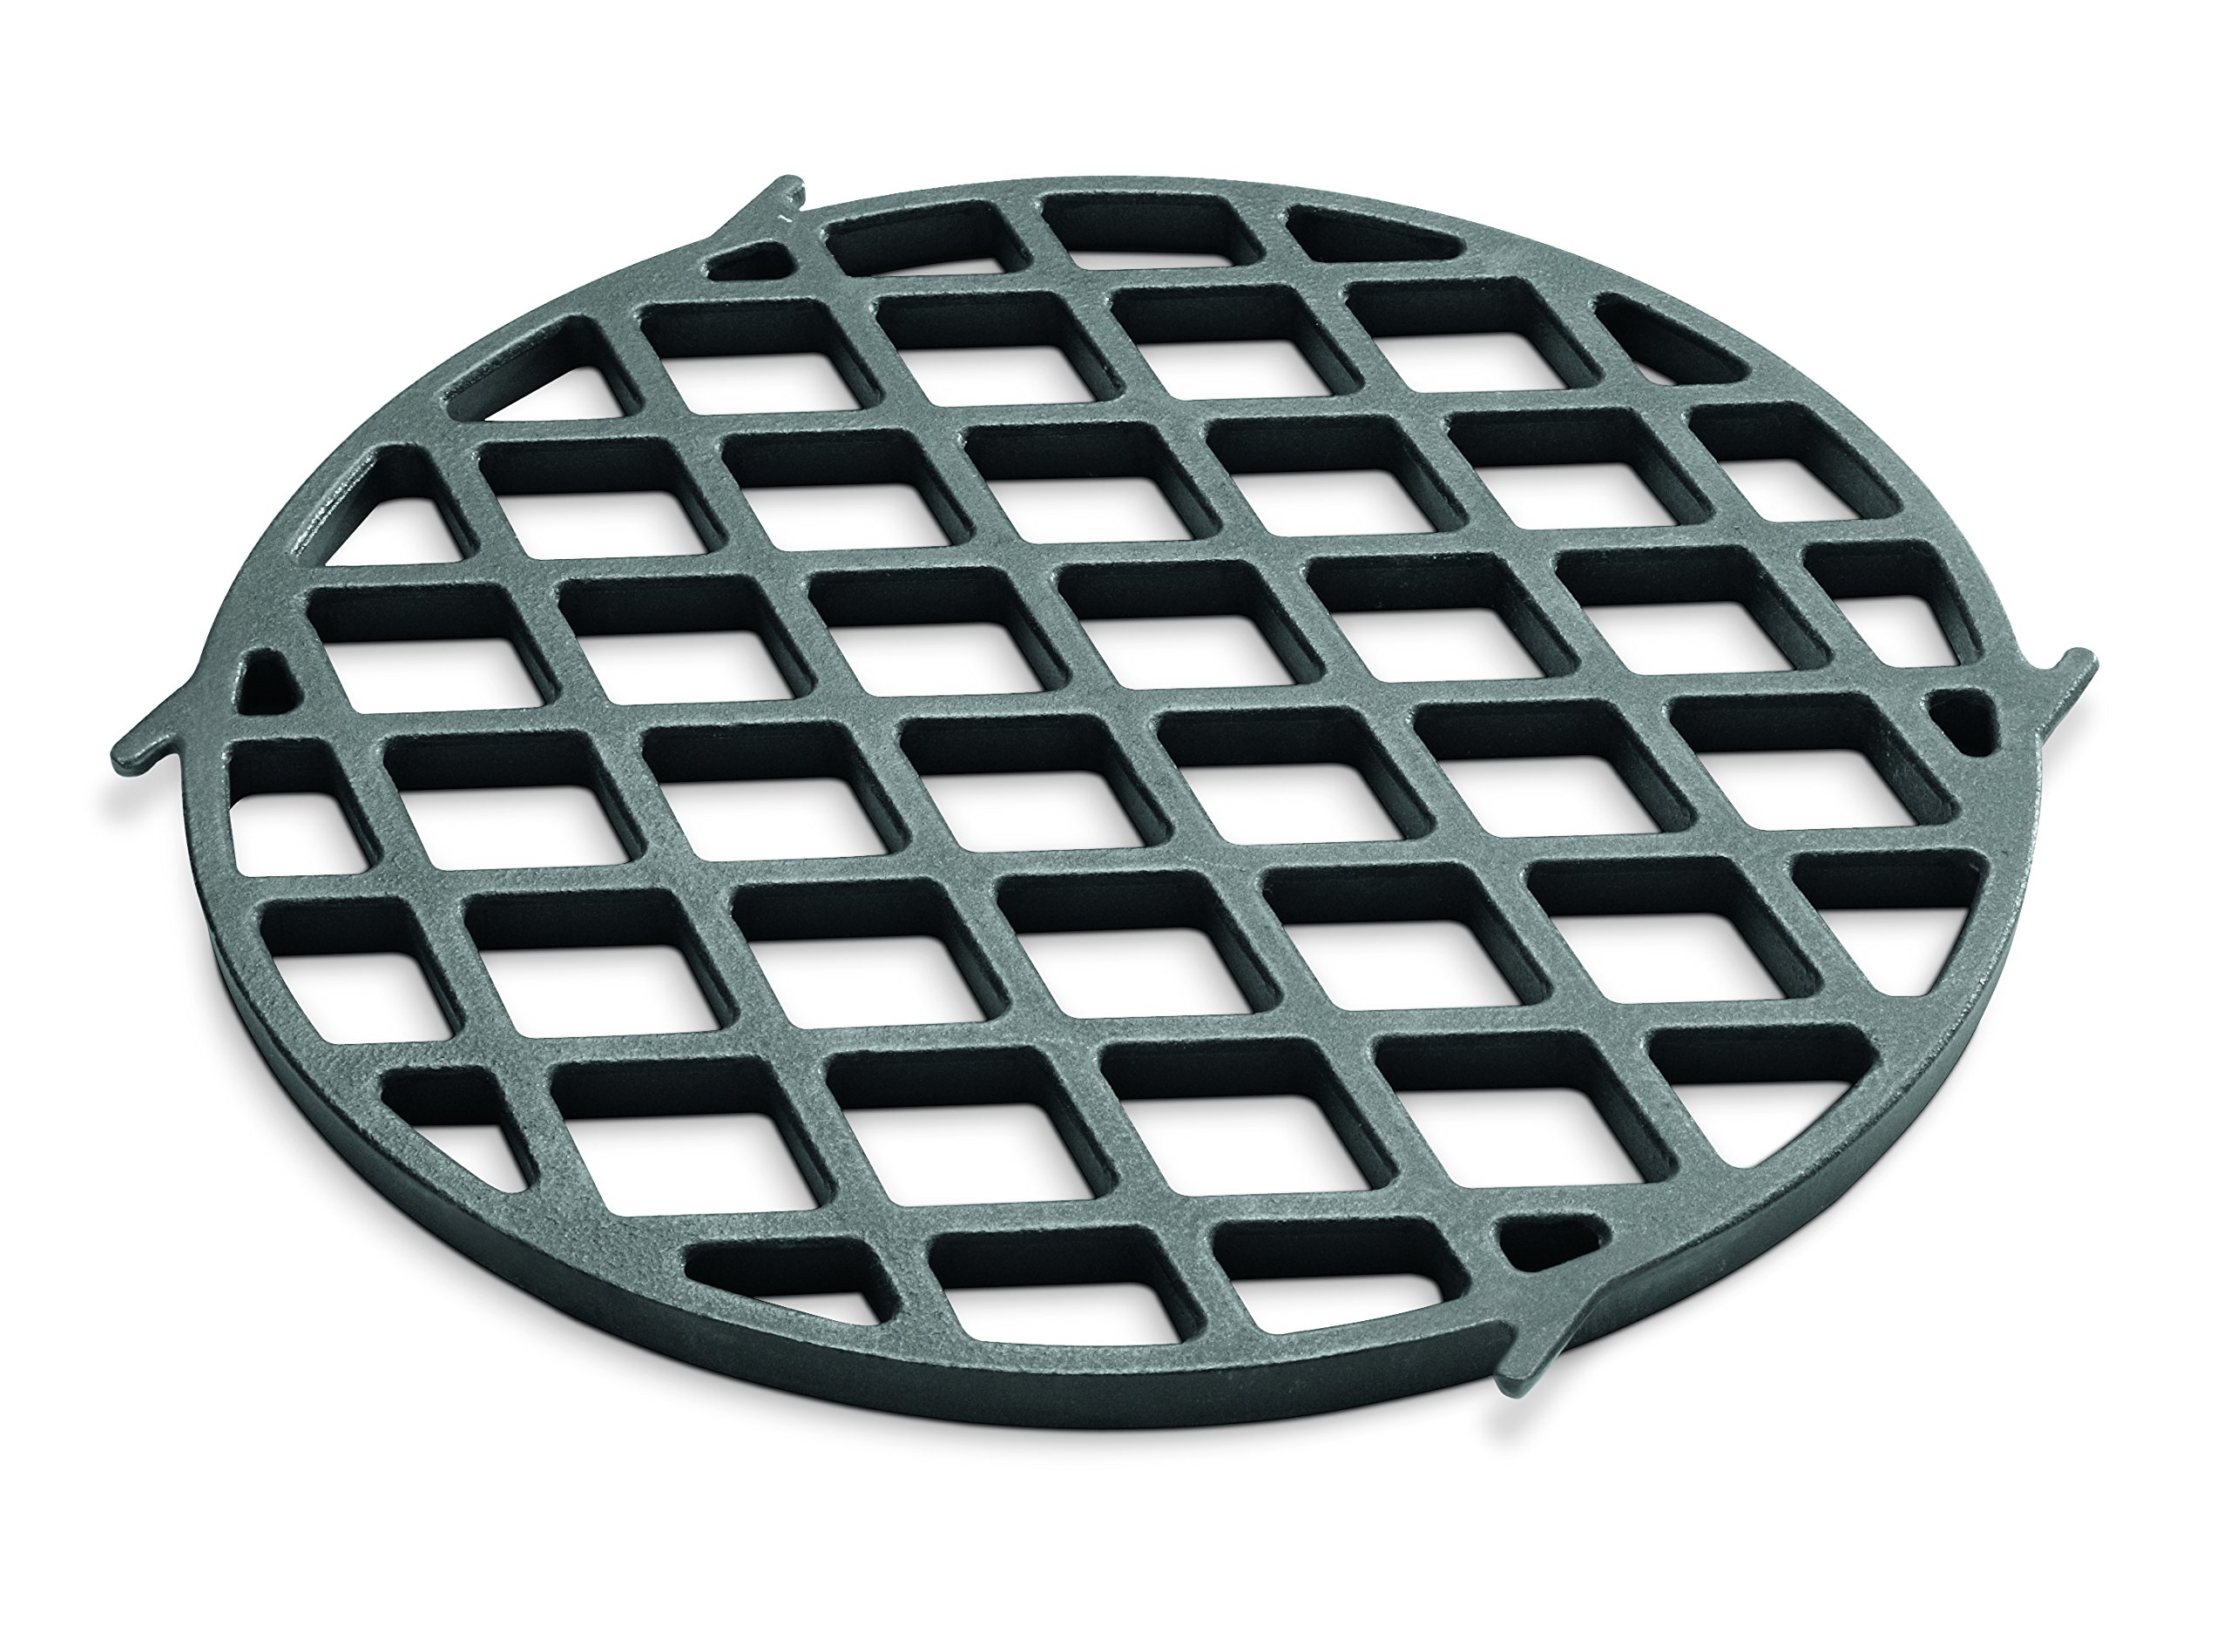 Weber 8834 Gourmet BBQ System Sear Grate by Weber (Image #1)